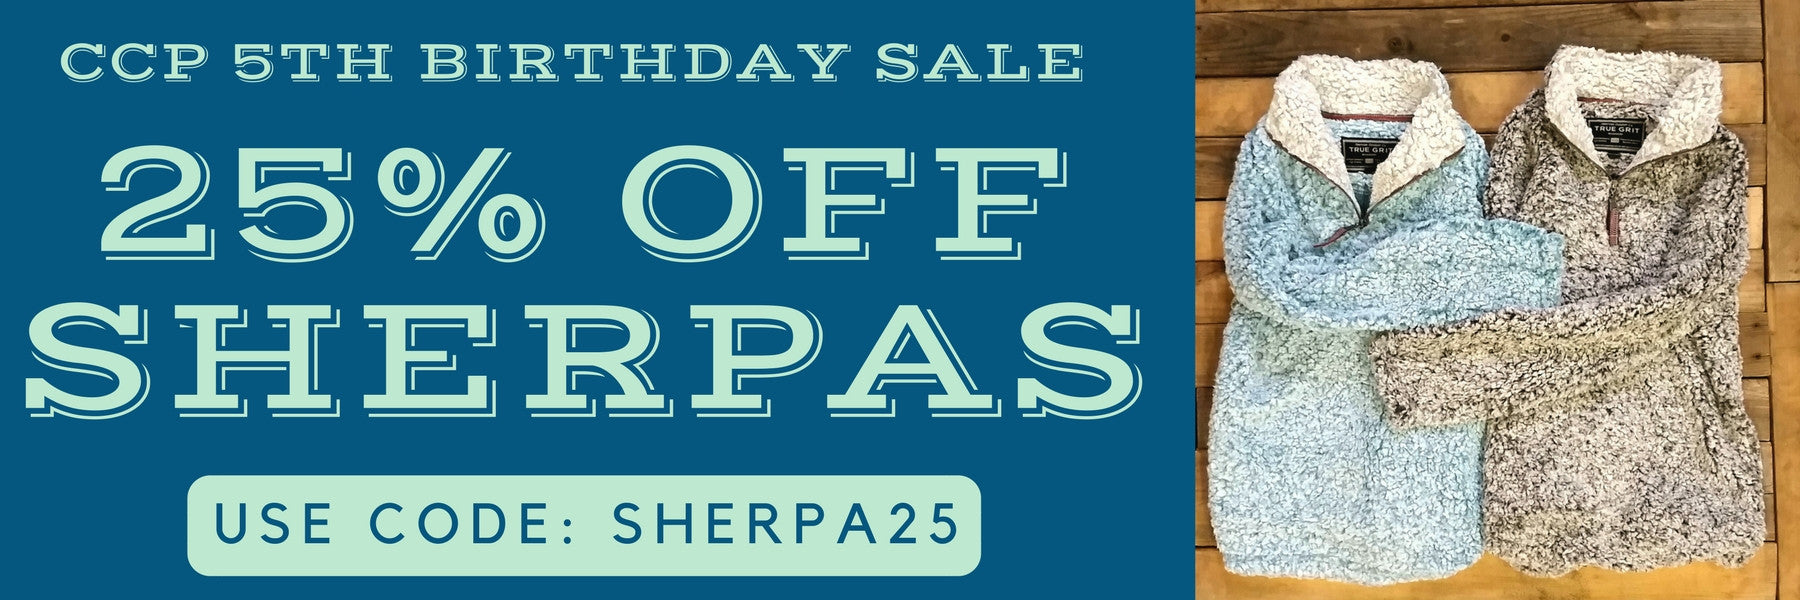 Sherpas on Sale Limited Time